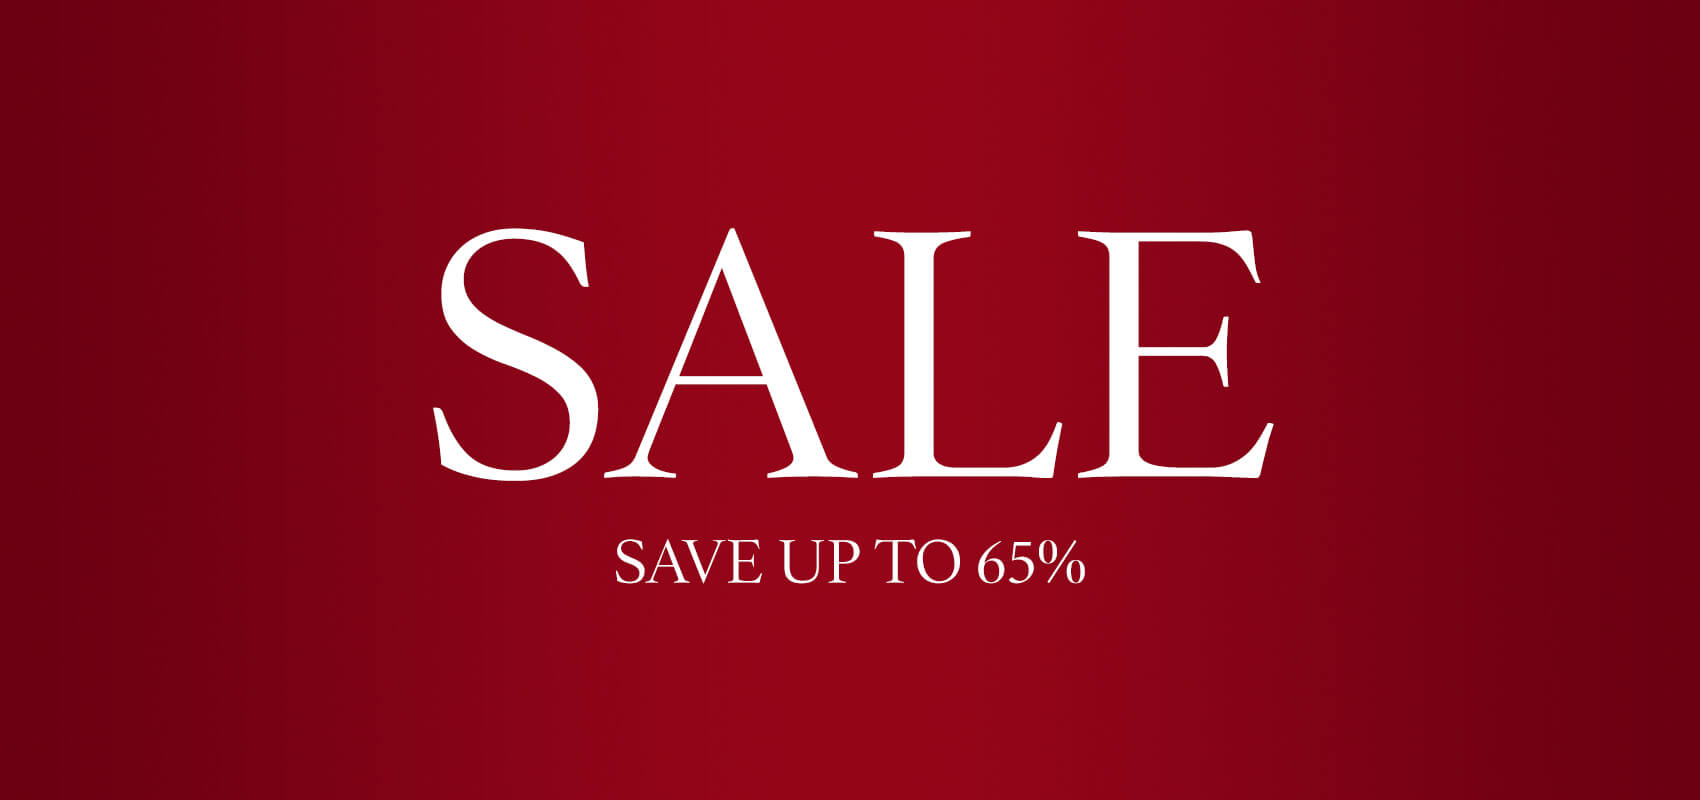 Sale. Save up to 65%